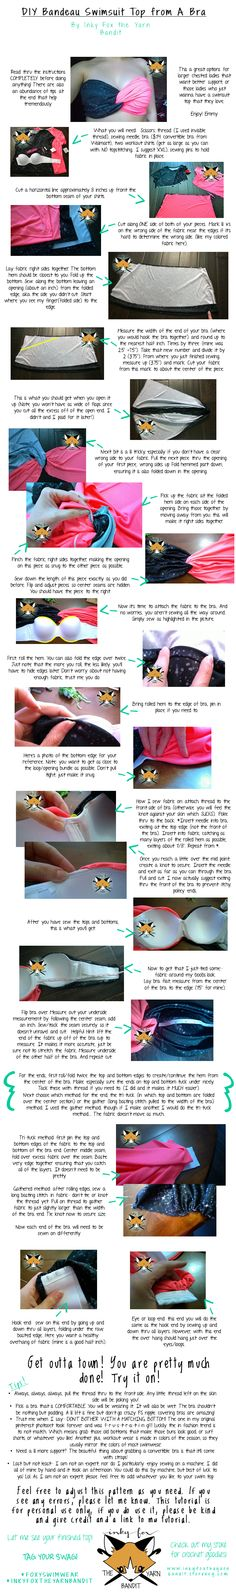 DIY swimsuit top made from a bra. My tutorial! Save image and zoom in!